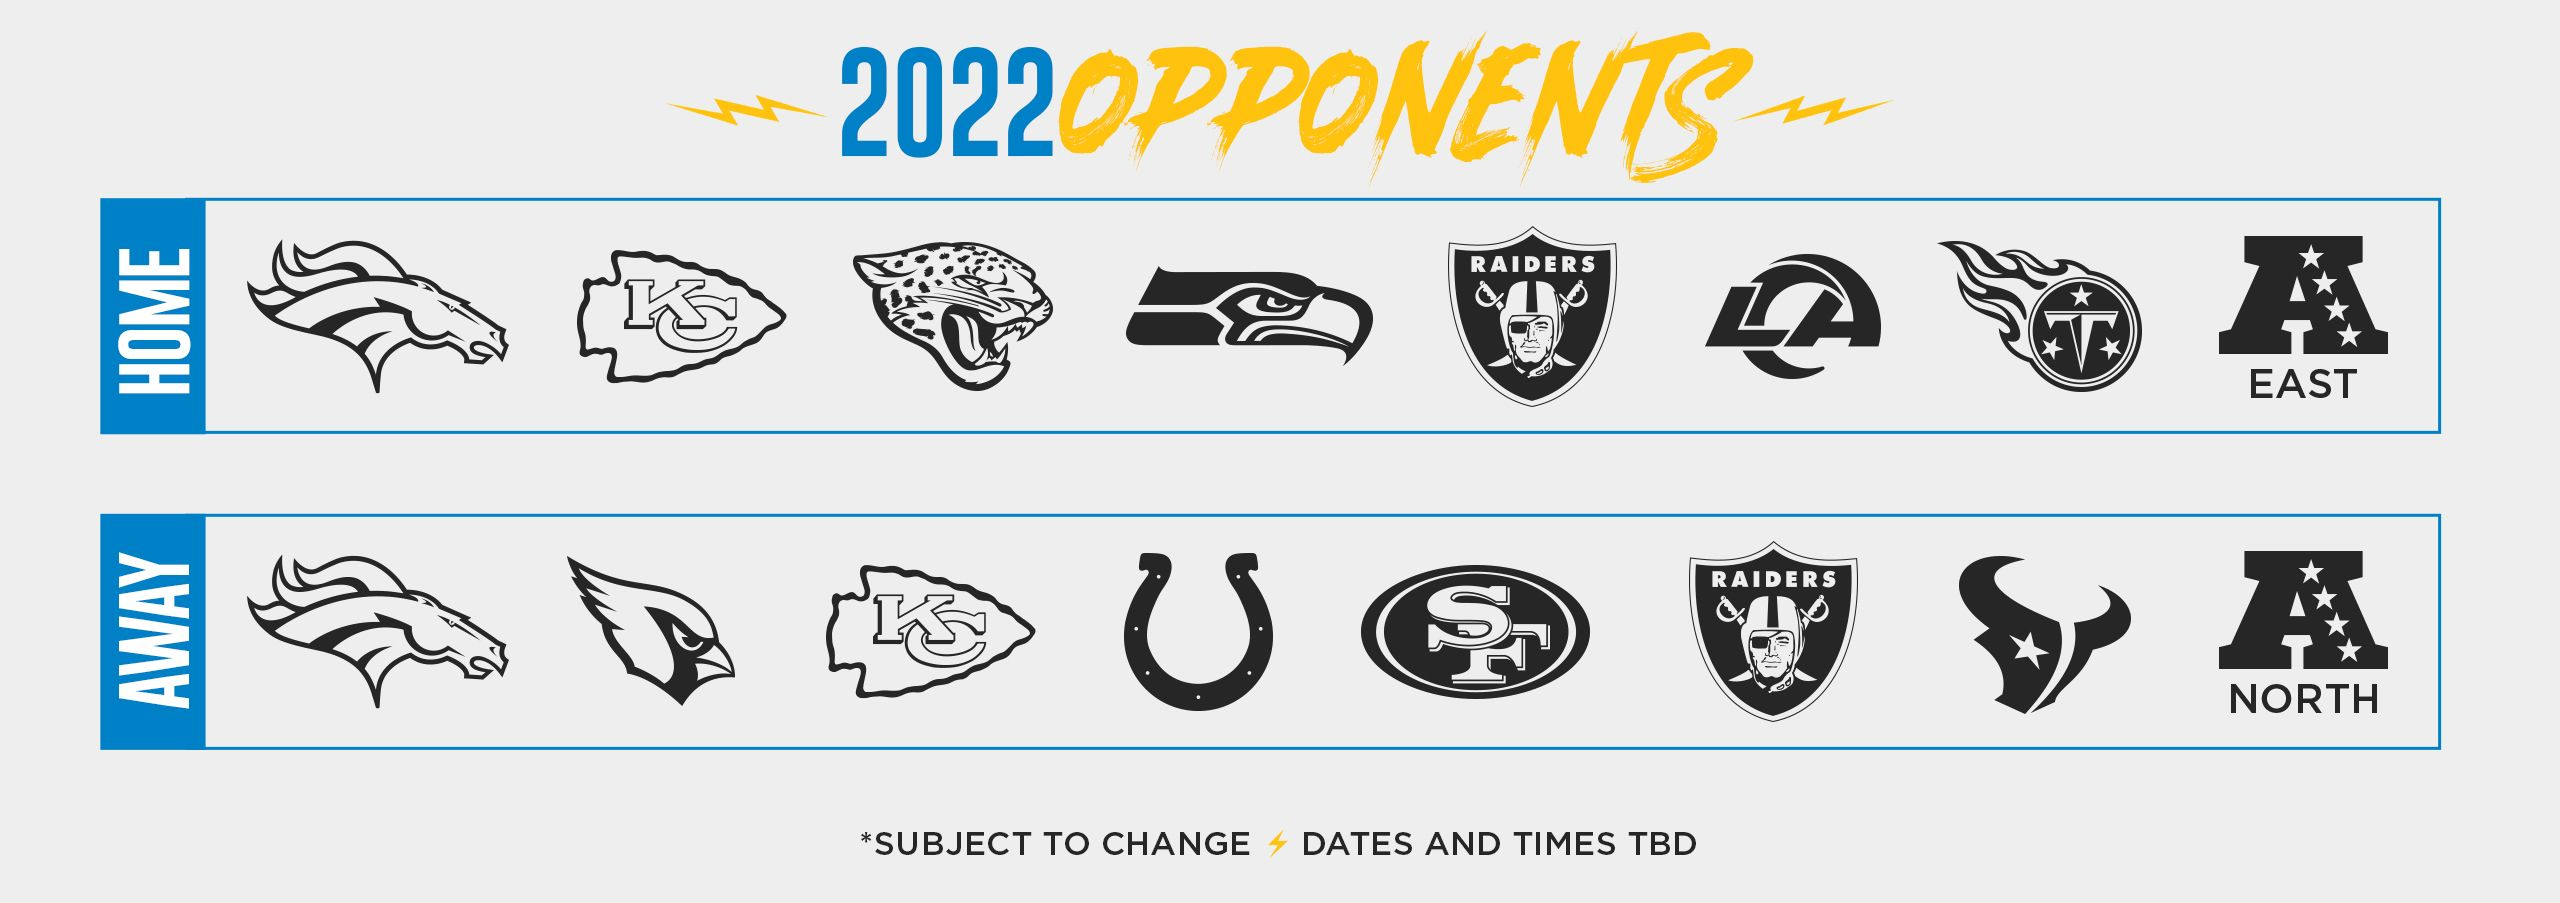 Calendrier Nfl 2021 2022 Chargers Future Opponents | Los Angeles Chargers   chargers.com